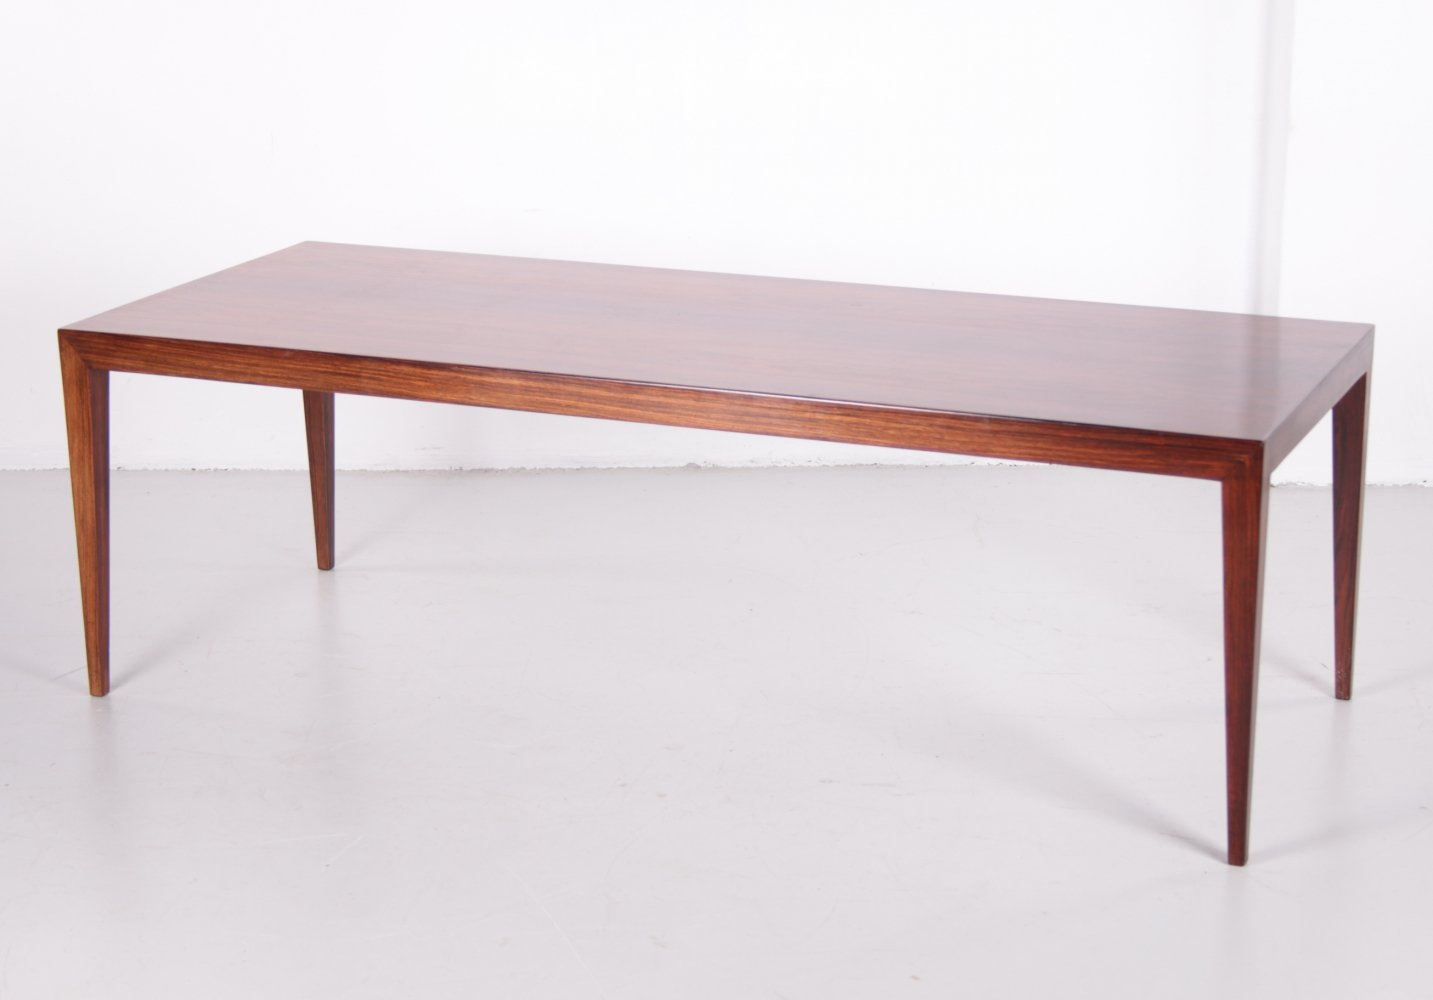 Elongated coffee table by Severin Hansen for Haslev Møbelsnedkeri, 1960s